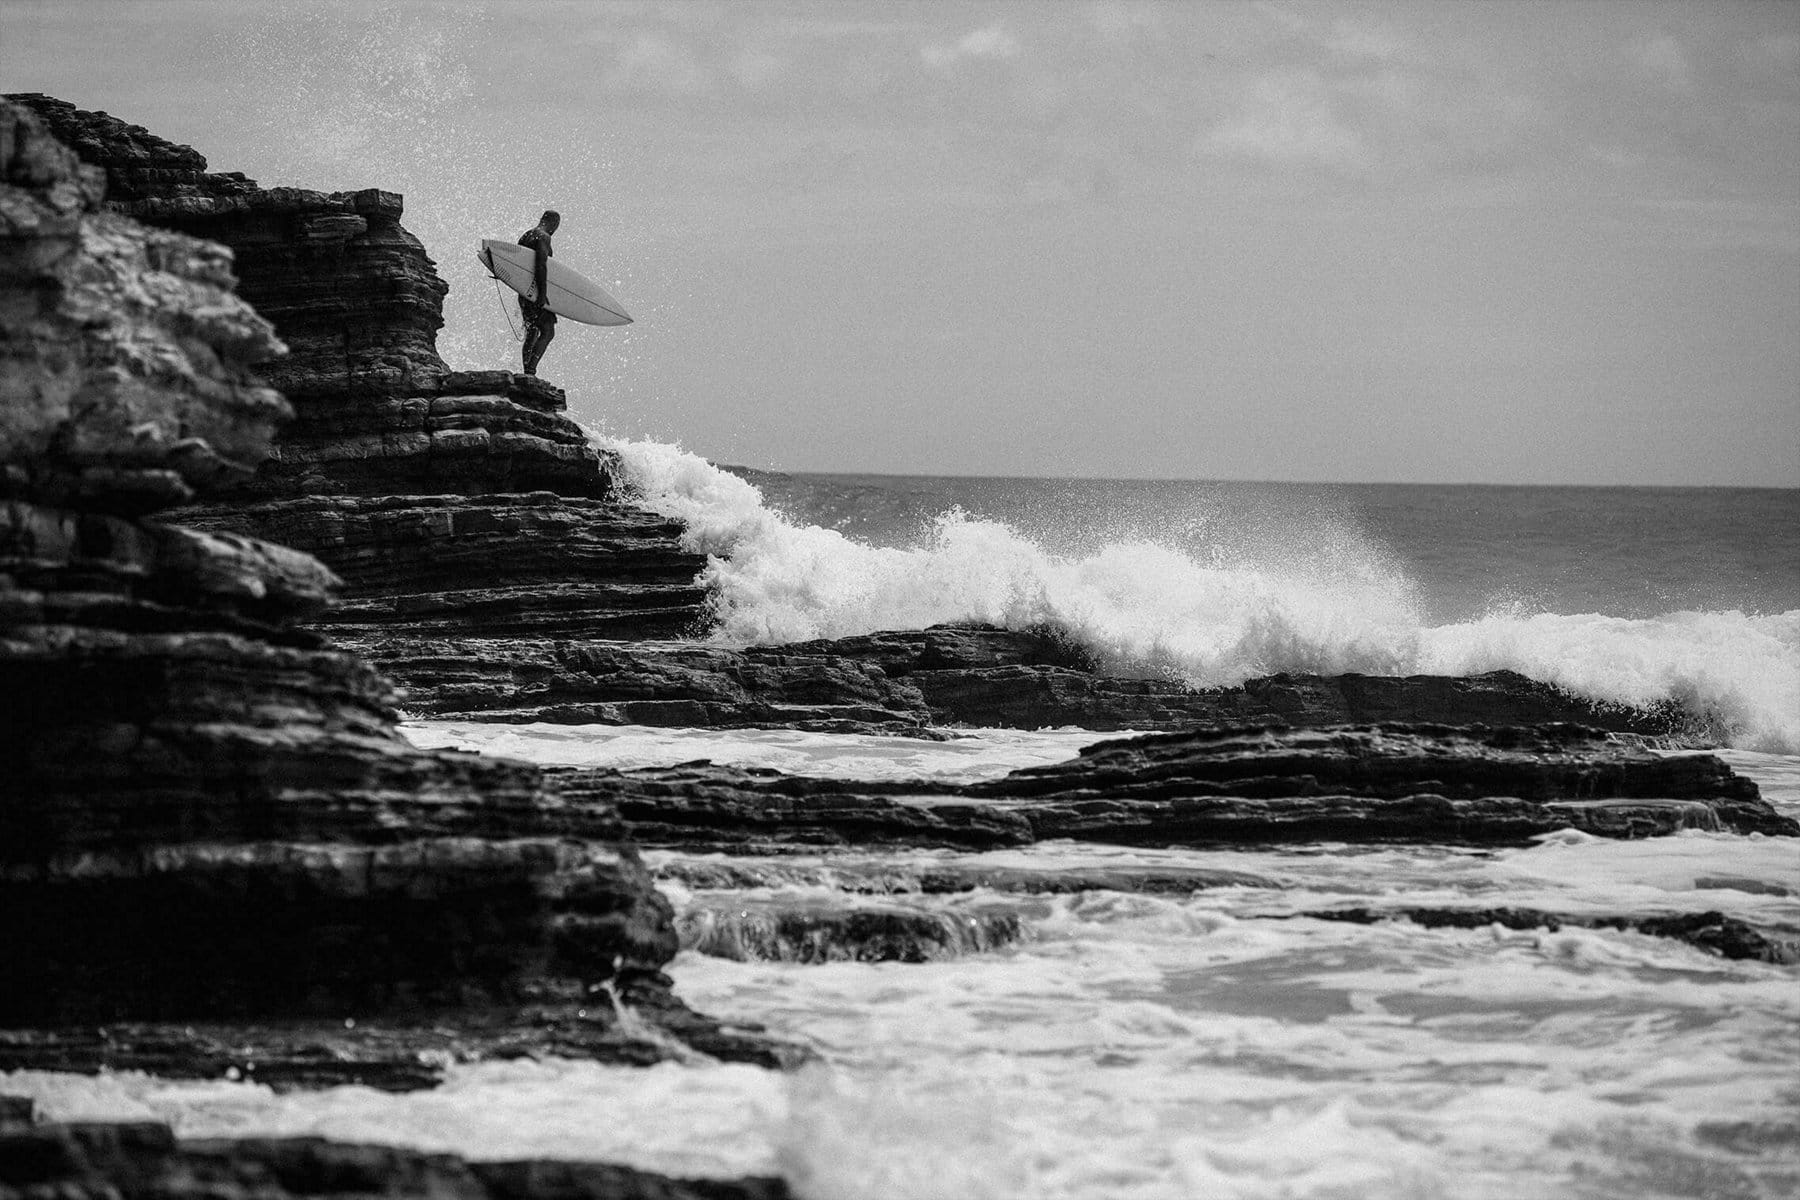 A black-and-white photo shows Jeff Johnson standing on a rocky shoreline holding a surfboard while looking down at the pounding surf.